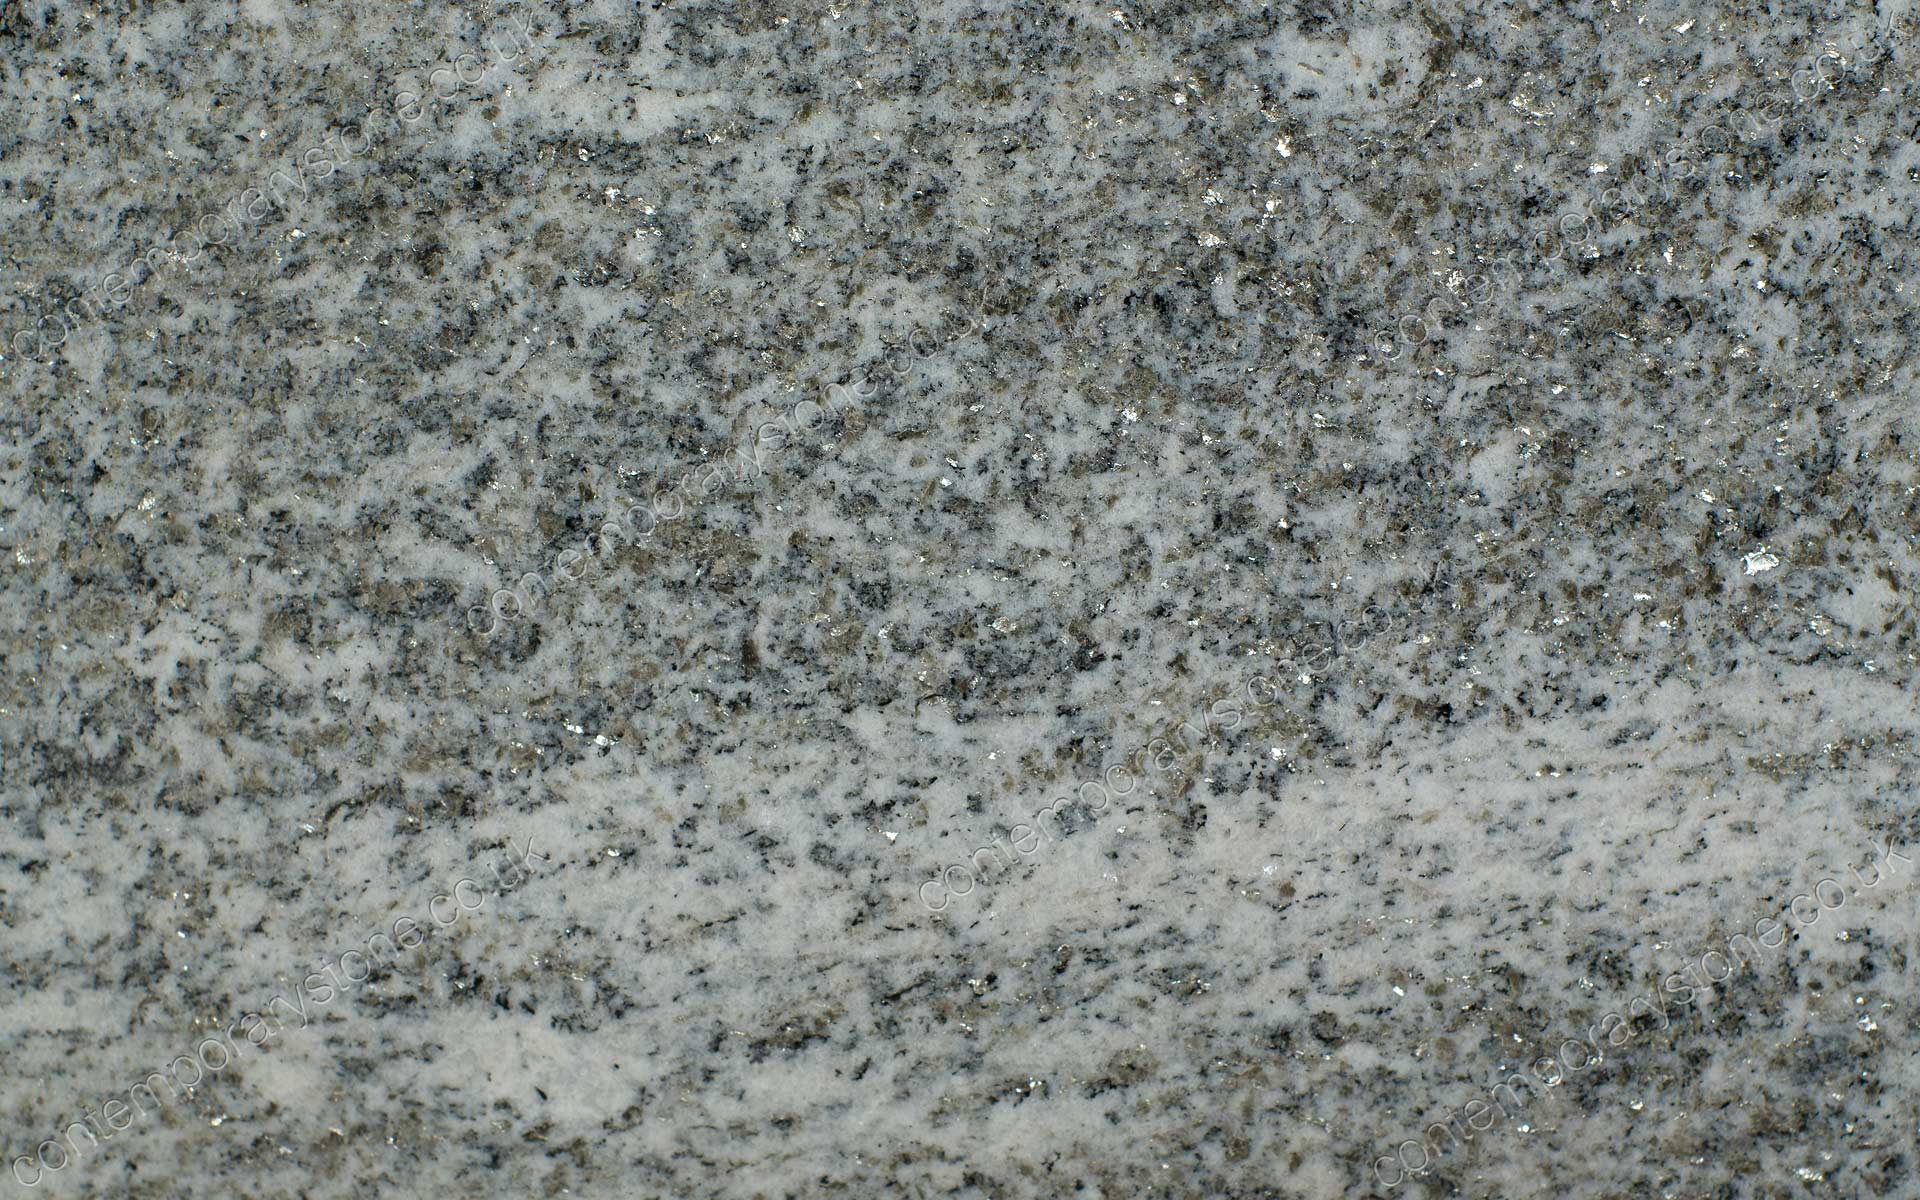 PIETRA DI LUSERNA granite close-up